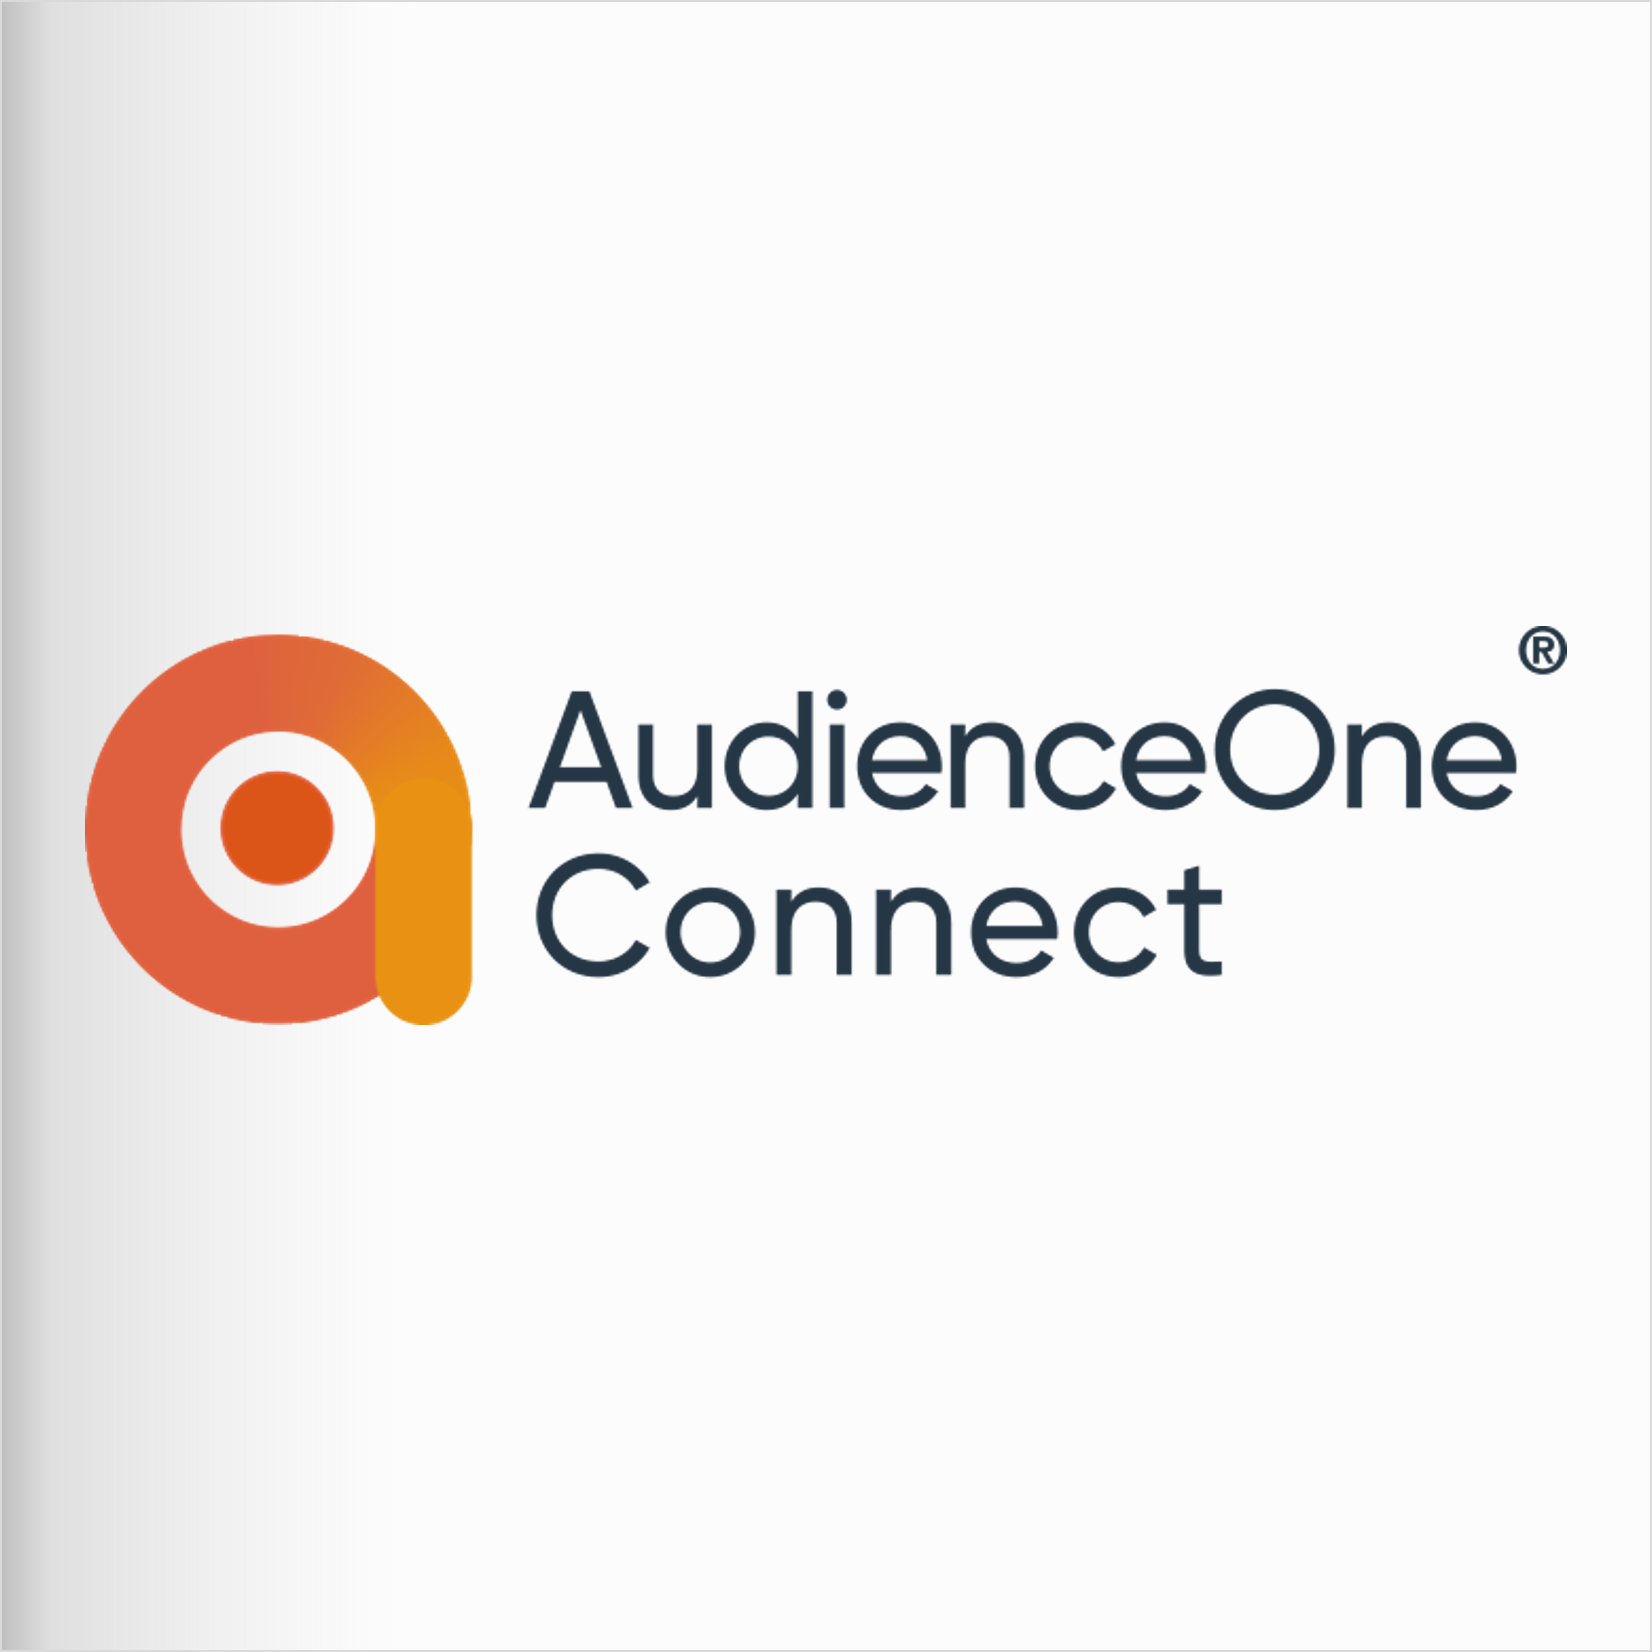 AudienceOne Connect® ご紹介資料